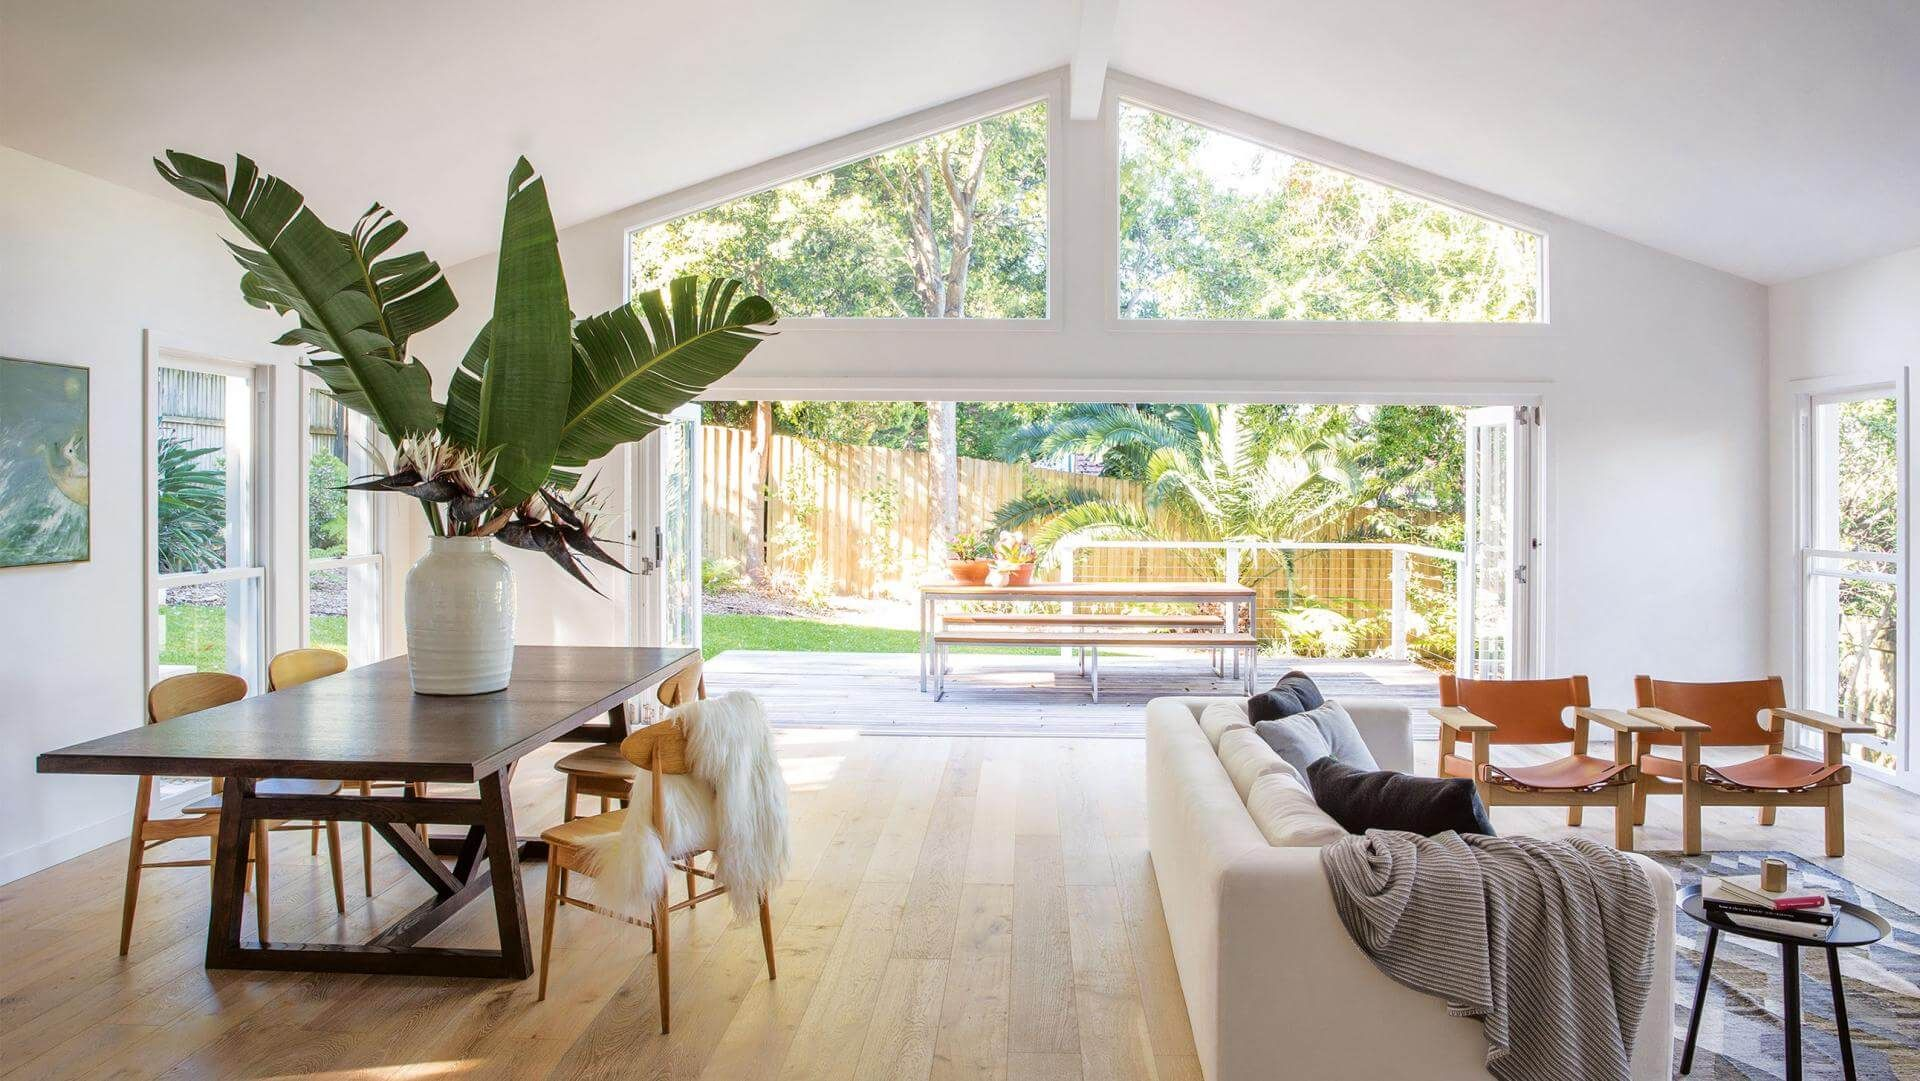 Beautiful Blended Outdoor Indoor Living Space Design Ideas House